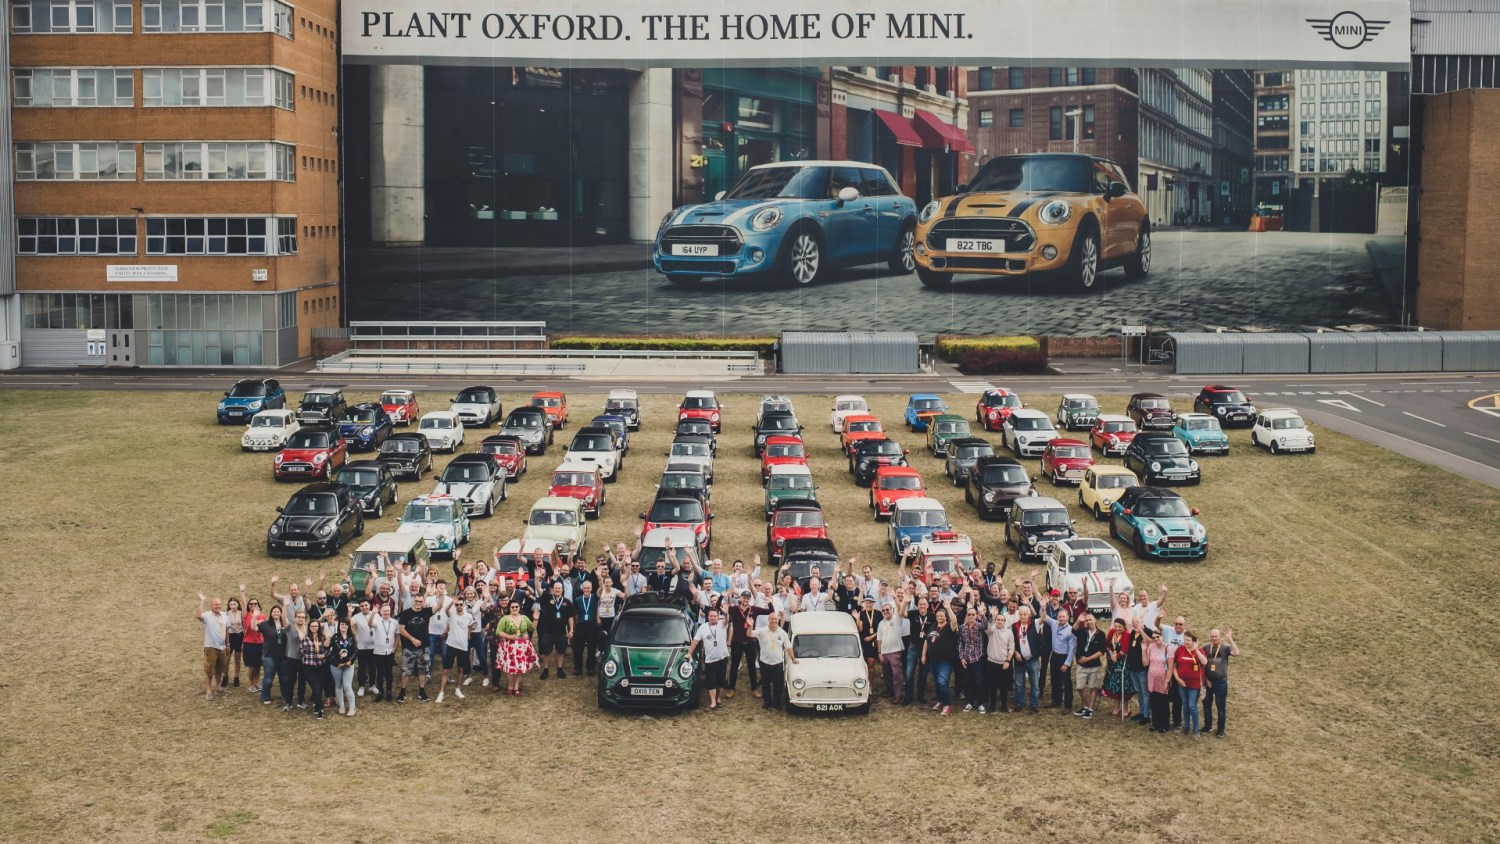 60 Minis gather to celebrate 60 years